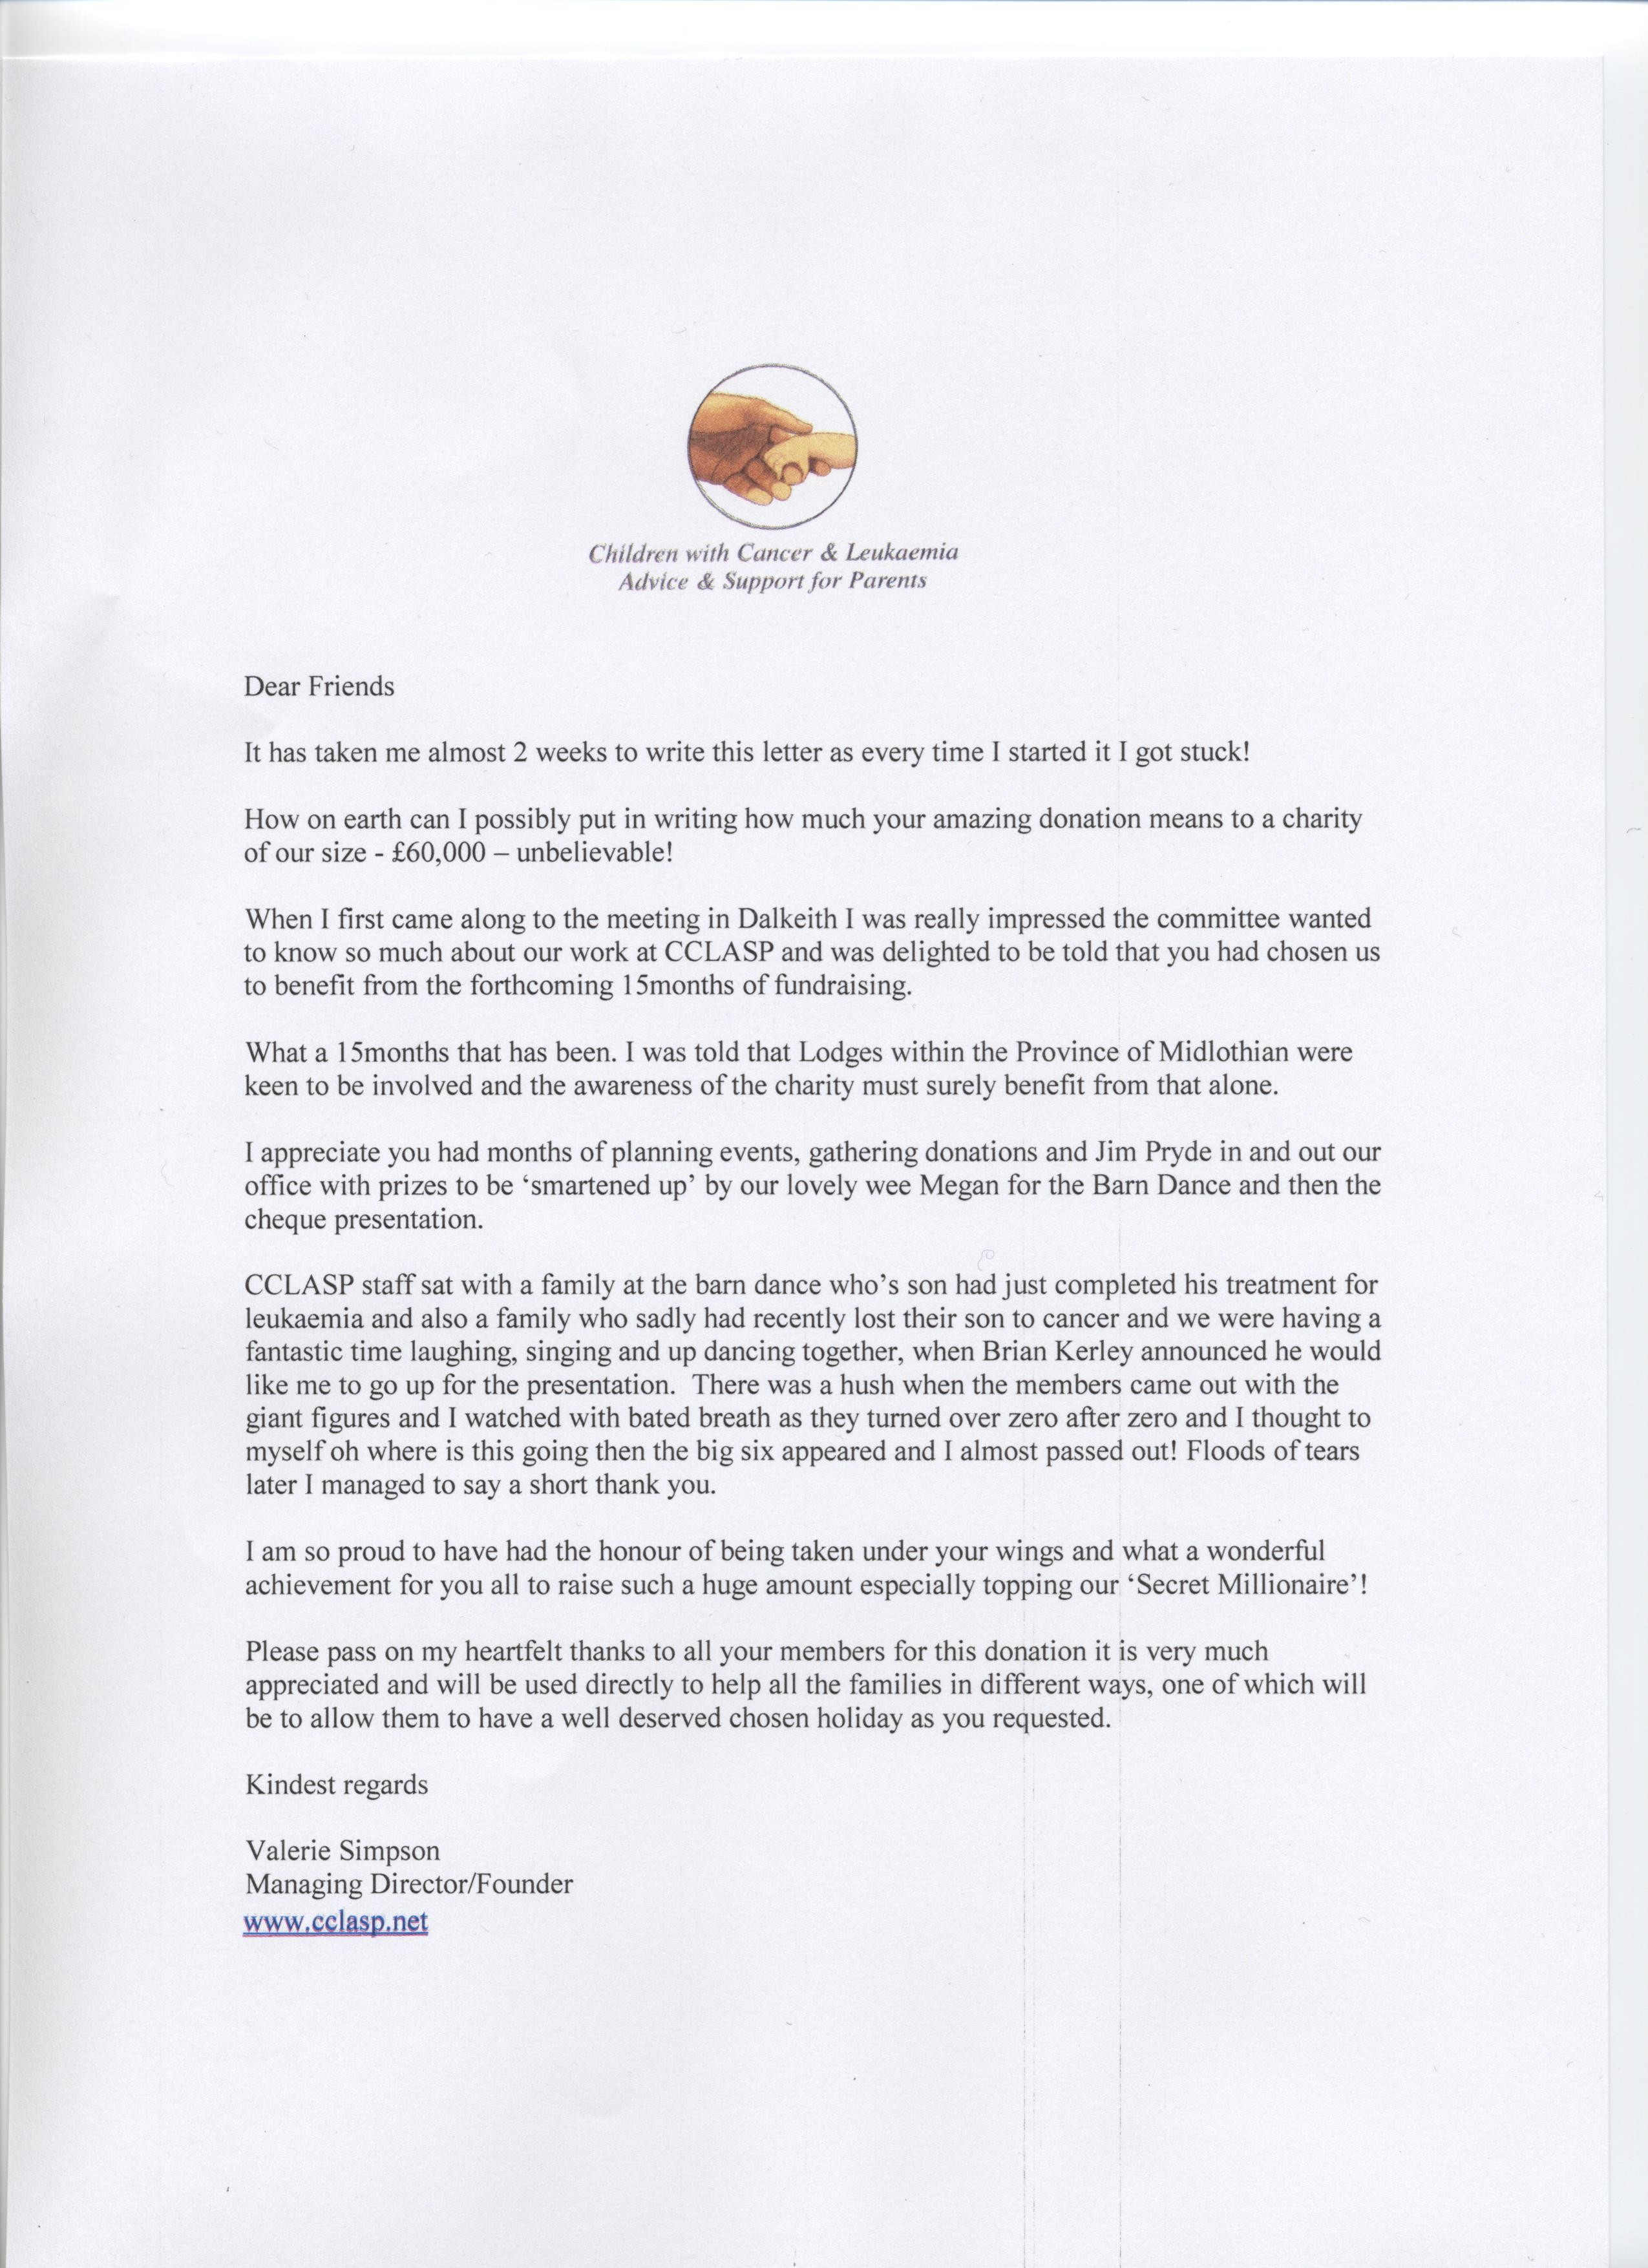 Sample Credit Report Experian Bro Jim Pryde Recently Visited Cclasp And  Made The Following Report To